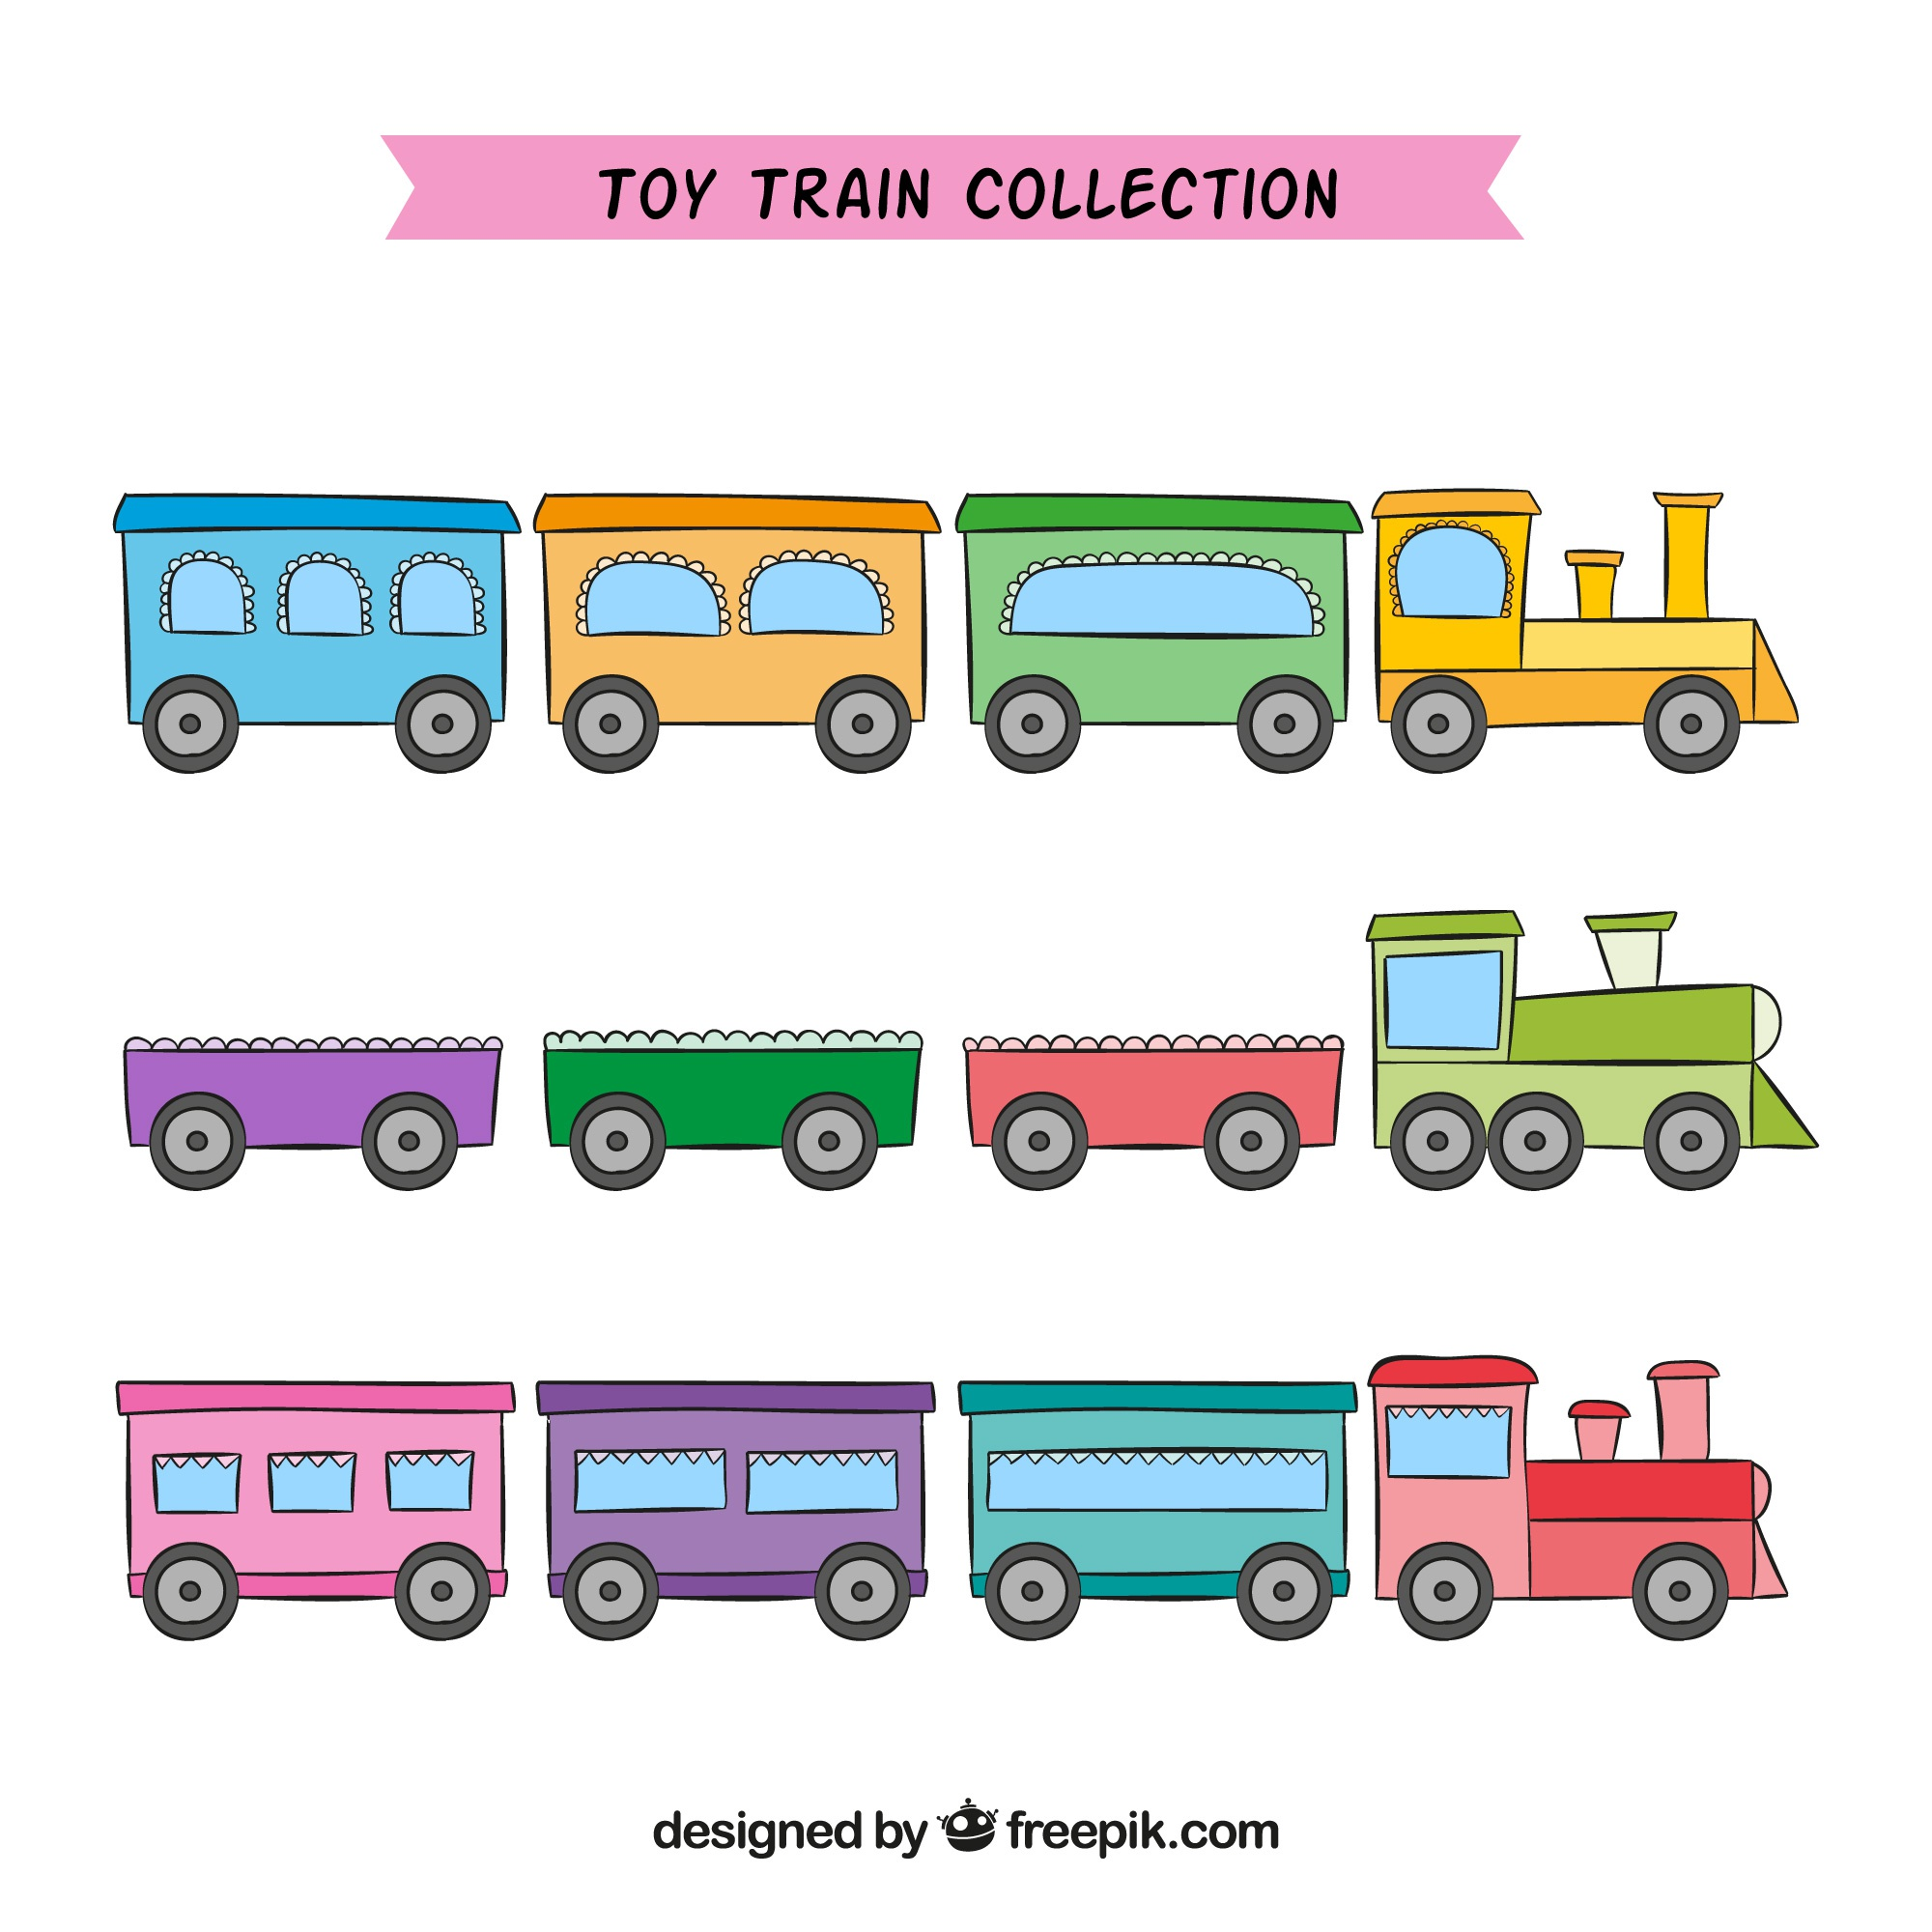 Various toy trains in pastel colors